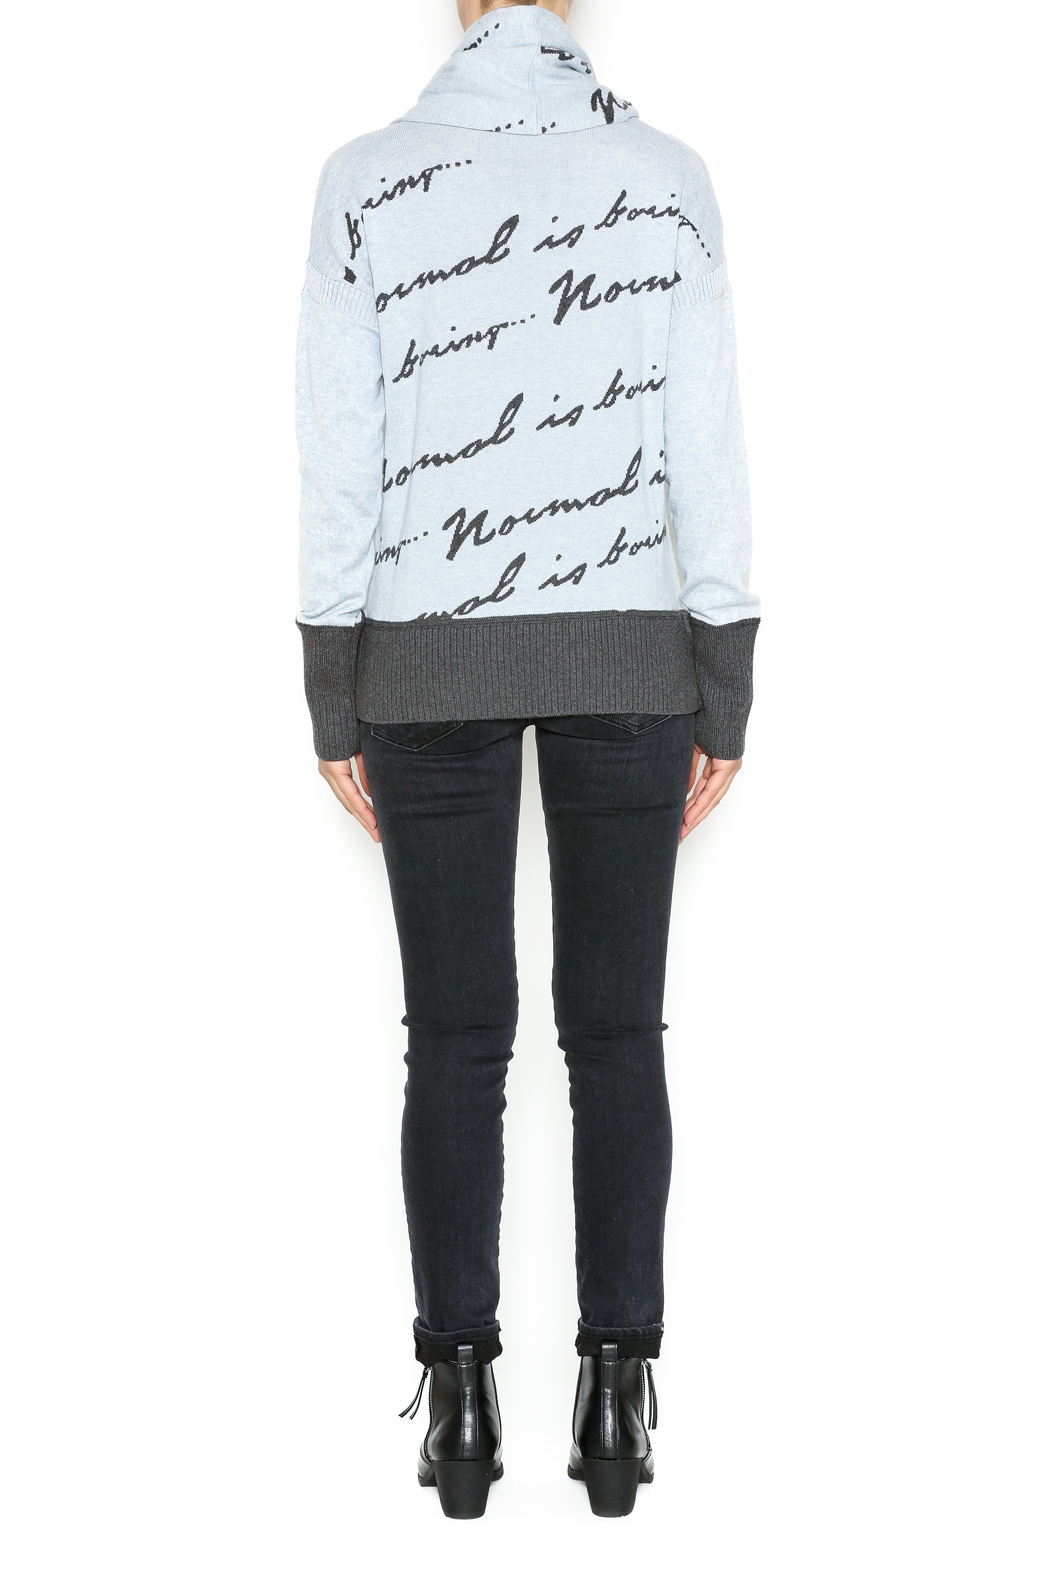 Lisa Todd Normal Is Boring Sweater - Side Cropped Image